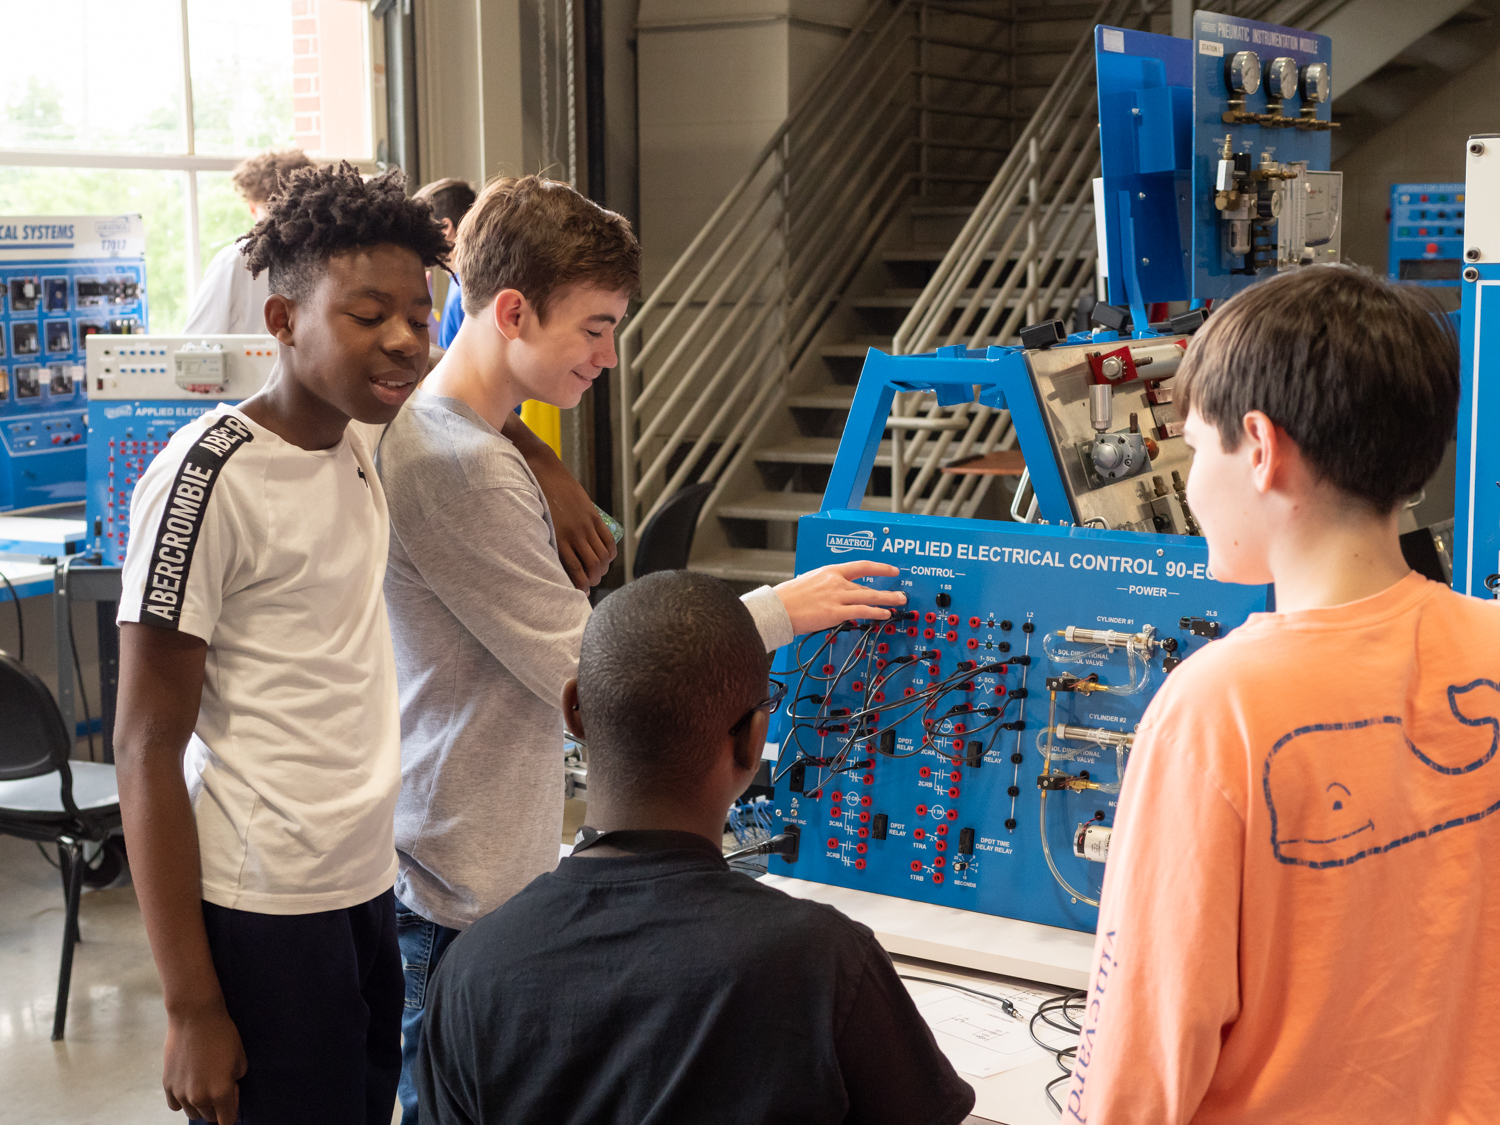 Arkansas State University Mid South Mechatronic Career Camp participants engage in hands-on activities to learn basic electricity and pneumatic skills that are used in numerous manufacturing processes.